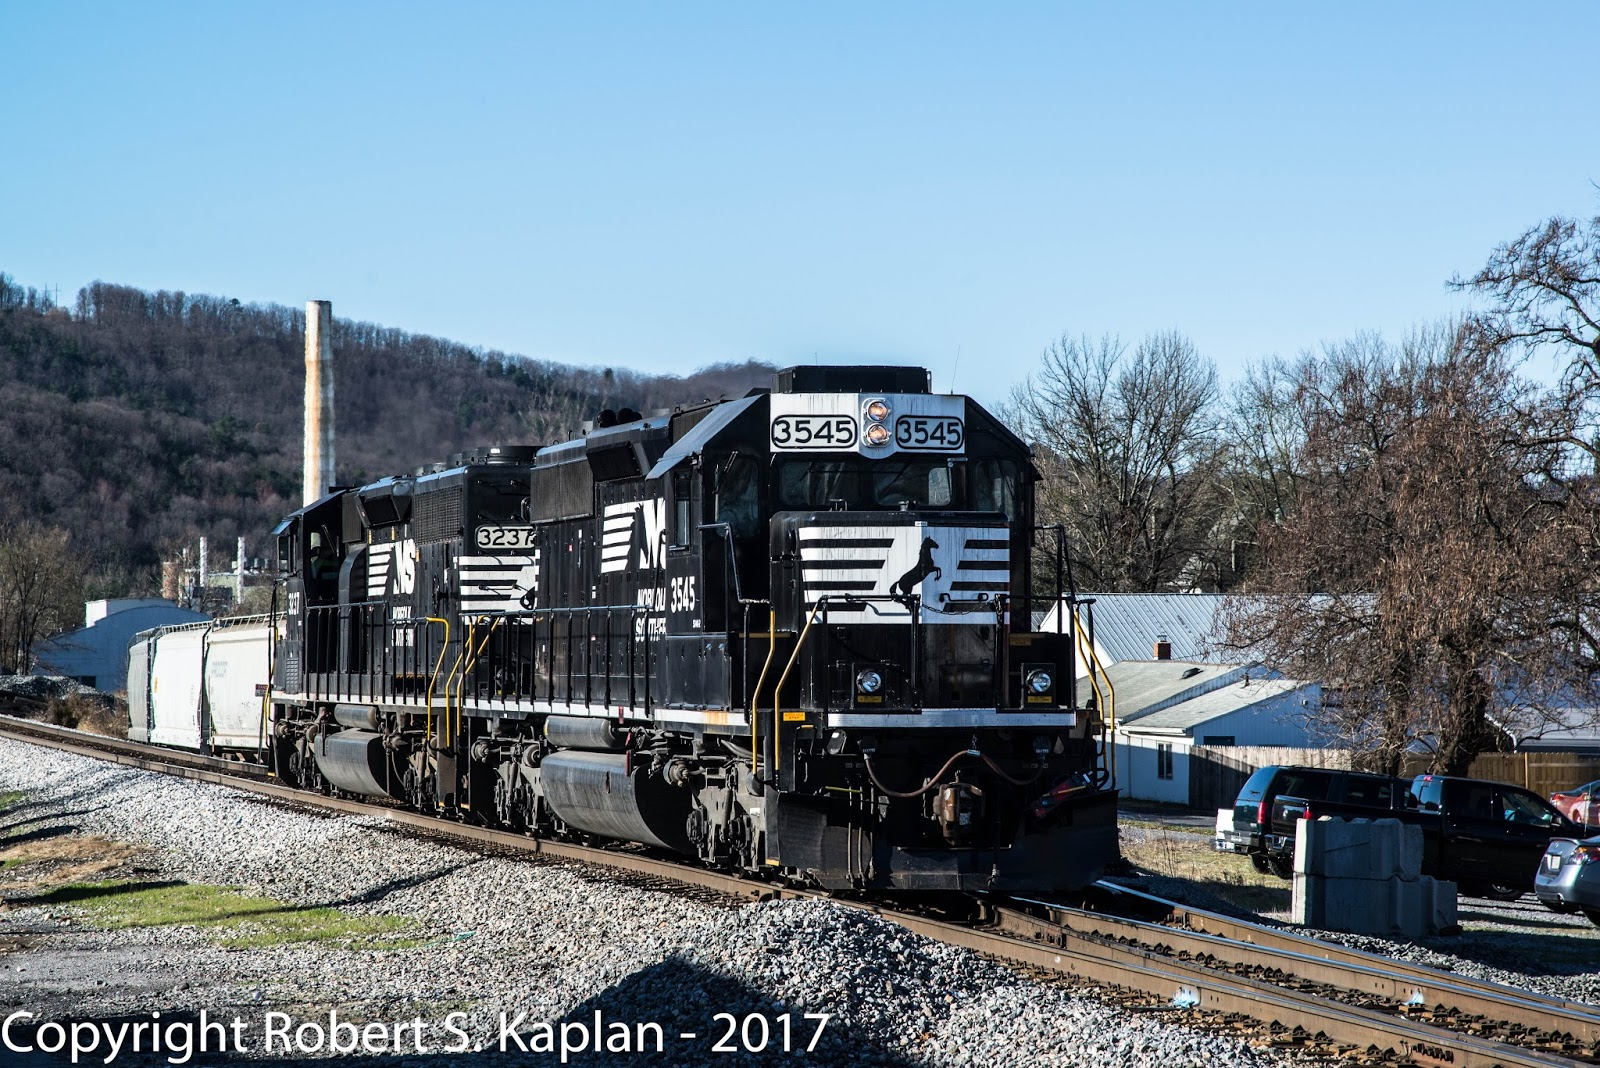 Capitol Limited Railfanning 3 8 2017